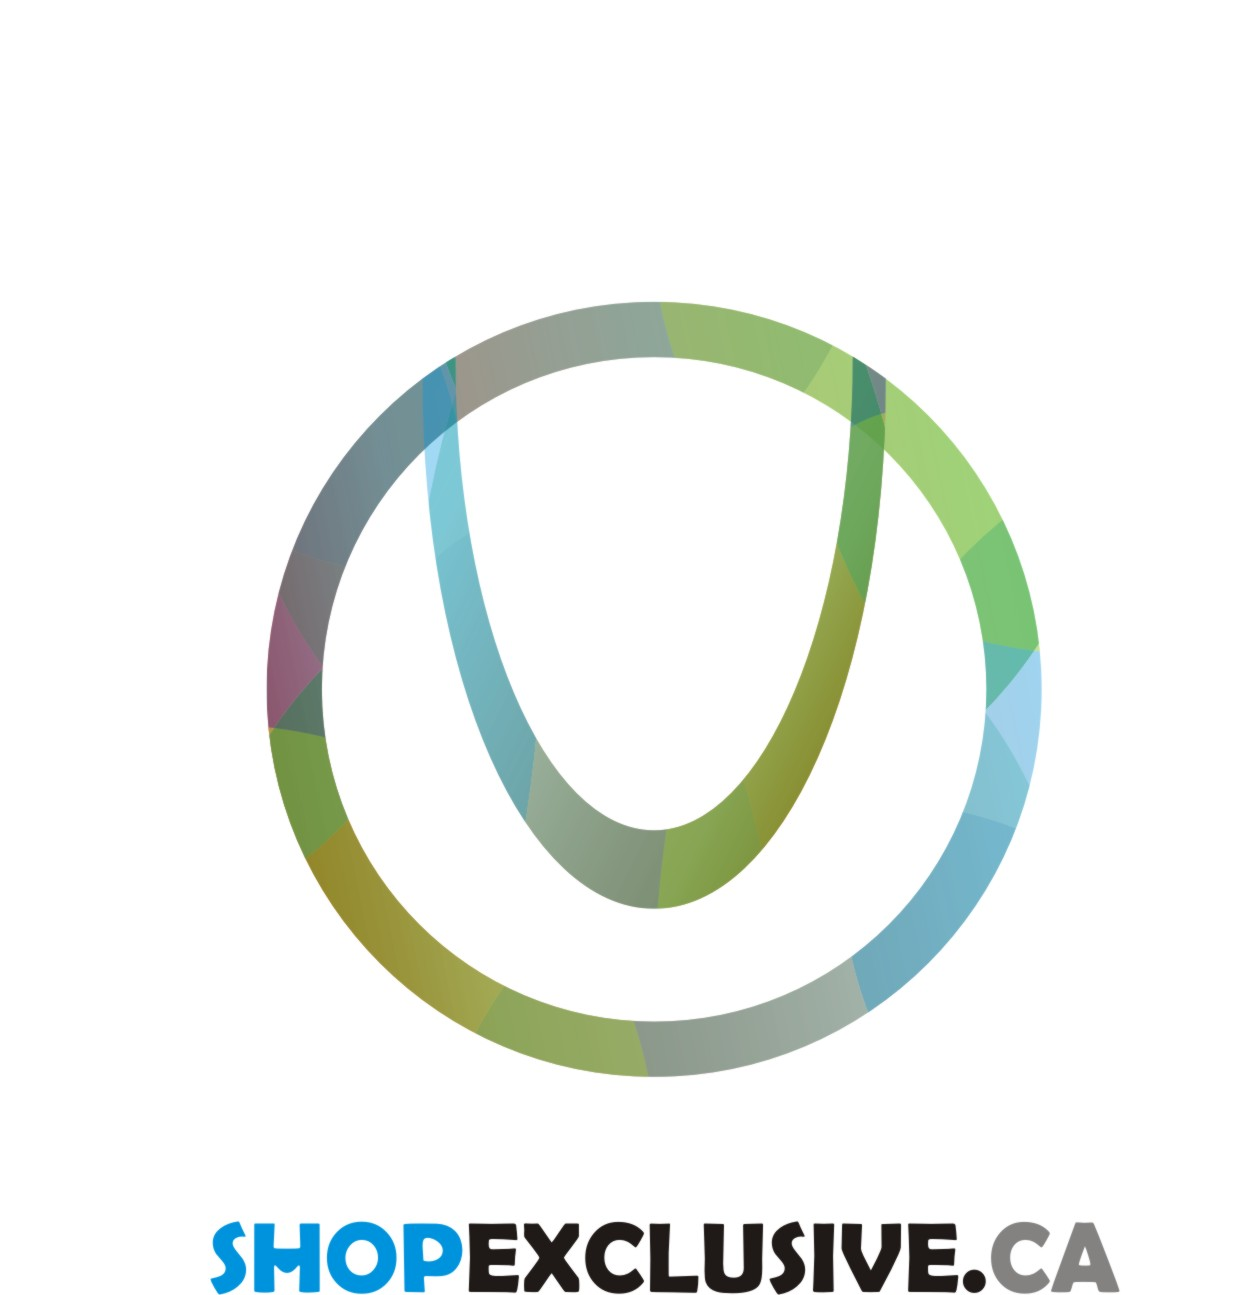 Logo Design by Aedz Danish - Entry No. 16 in the Logo Design Contest Logo Design needed for branding exciting new company:  ShopExclusive.ca.